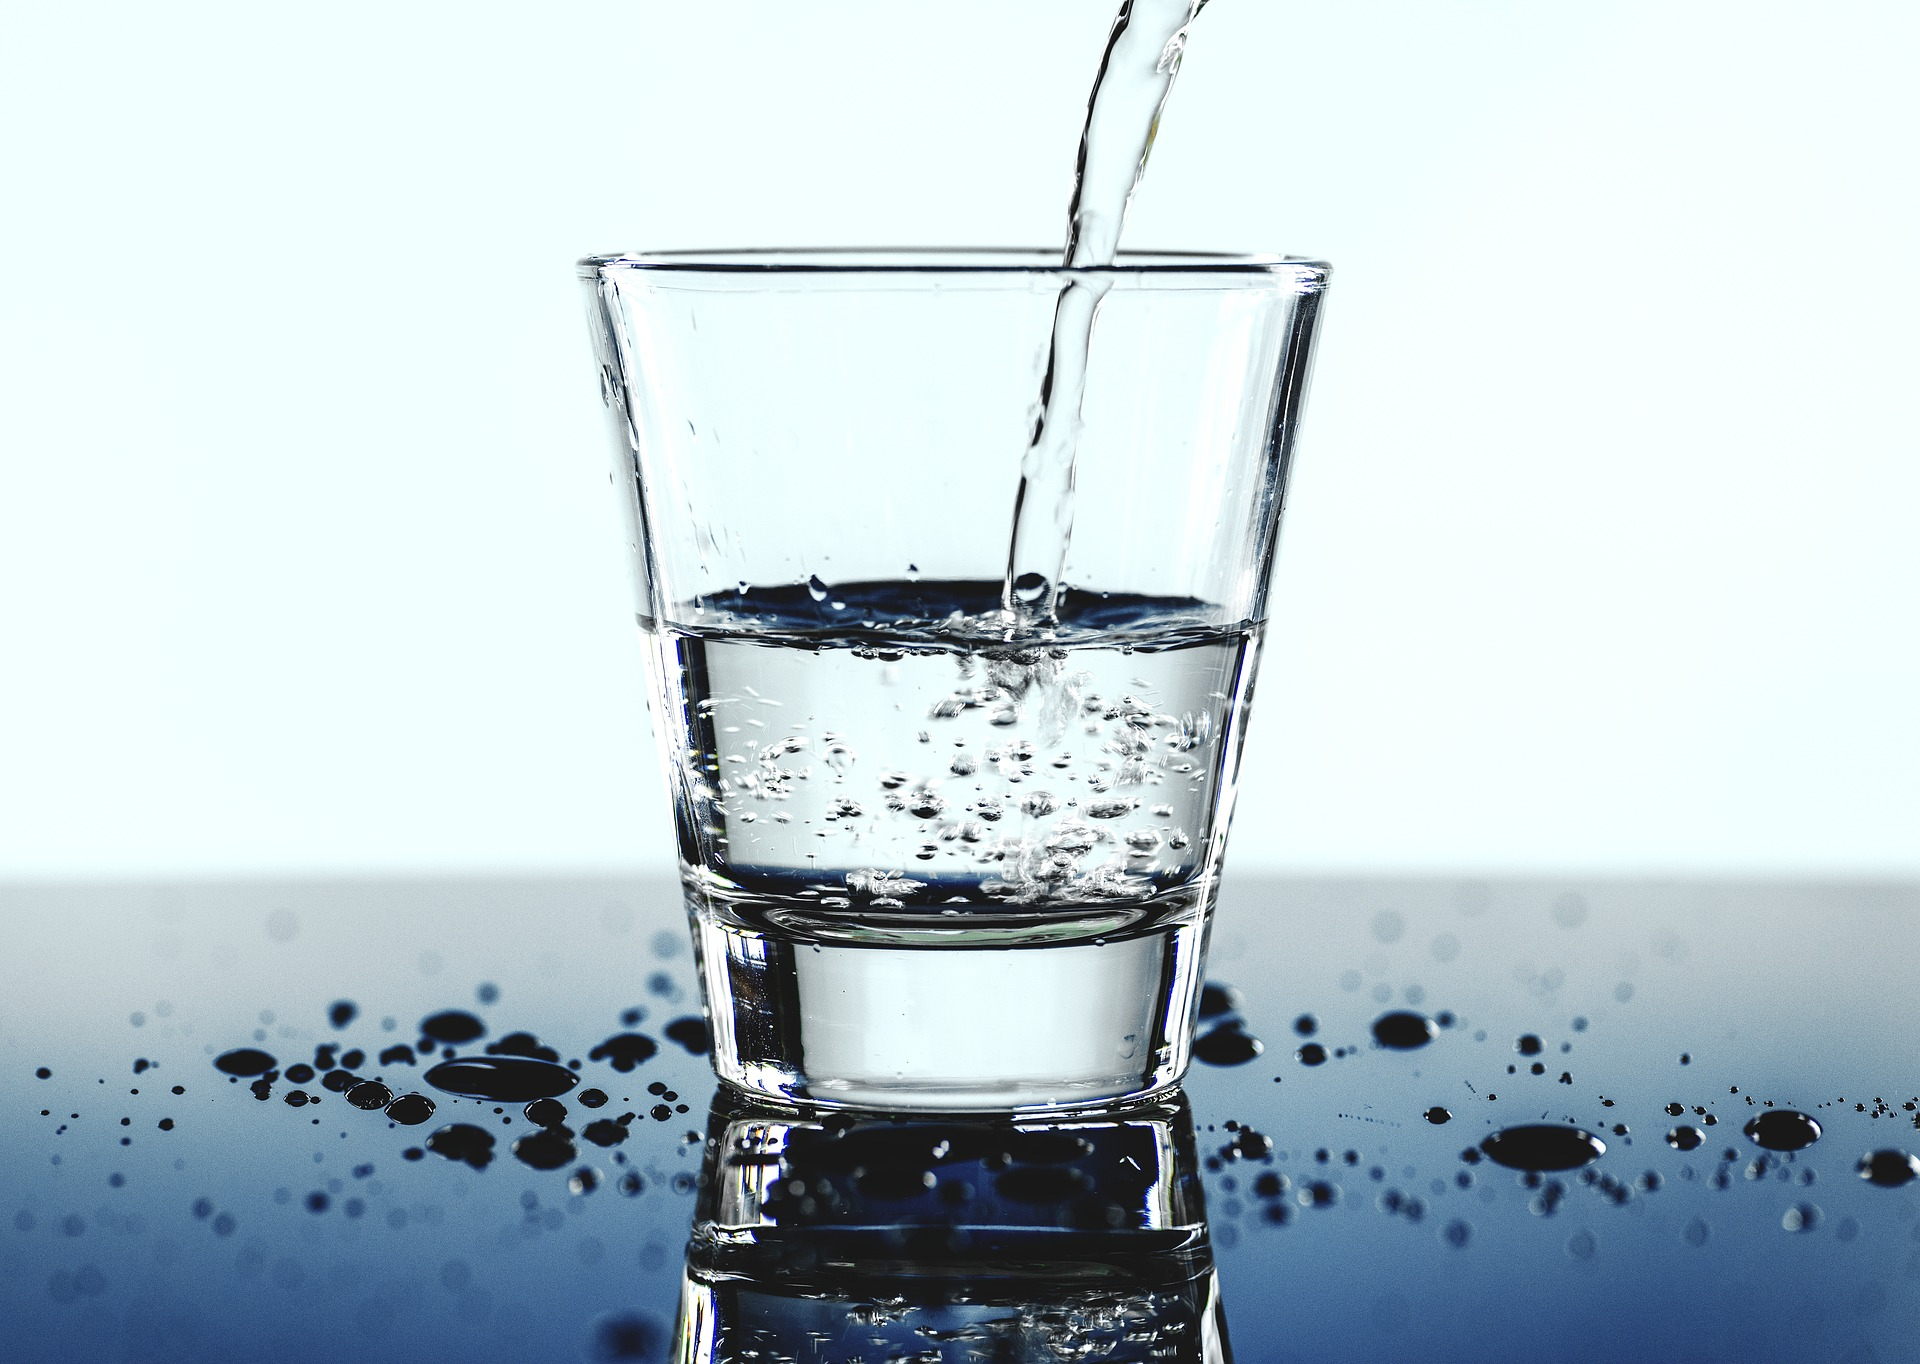 Crystal clear water being poured into a drinking glass